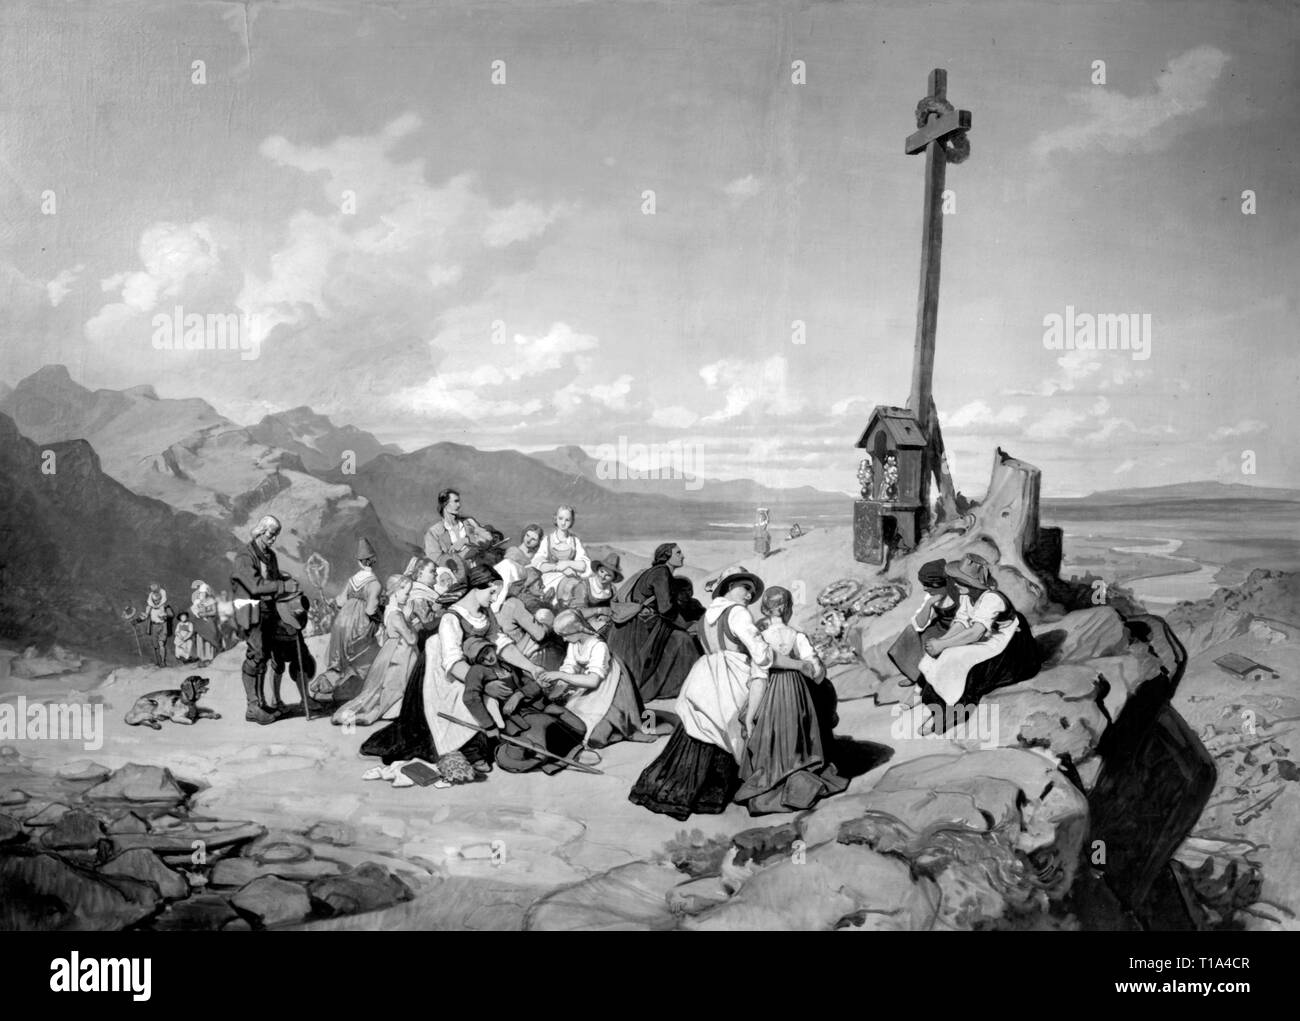 religion, Christianity, pilgrimage, pilgrimage in the mountains, painting, by Philipp von Foltz (1805 - 1877), 19th century, Bavarian State Collections of Fine Arts, Artist's Copyright has not to be cleared - Stock Image